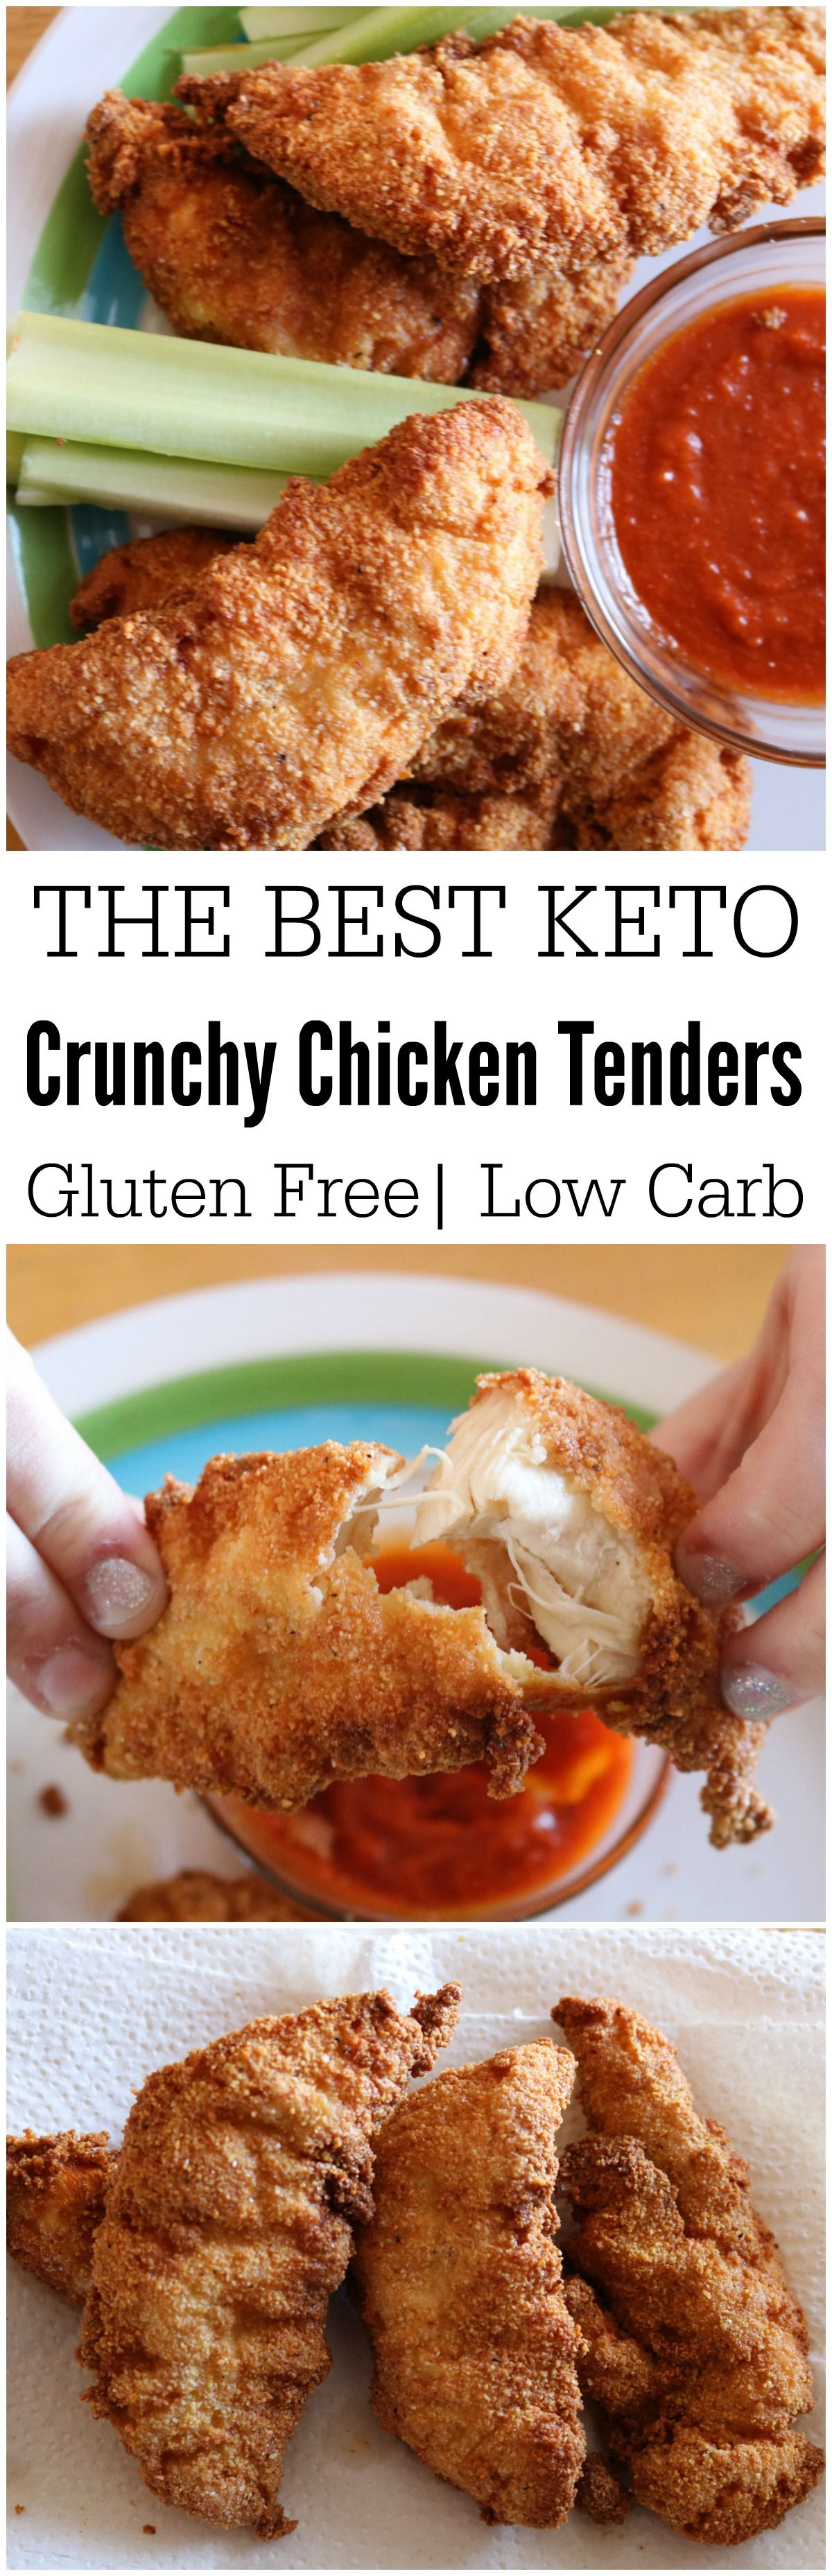 Don't give up foods you love. Simply find alternatives that are just as  delicious, like these super moist & crunchy keto chicken tenders. Recipes.  Easy.